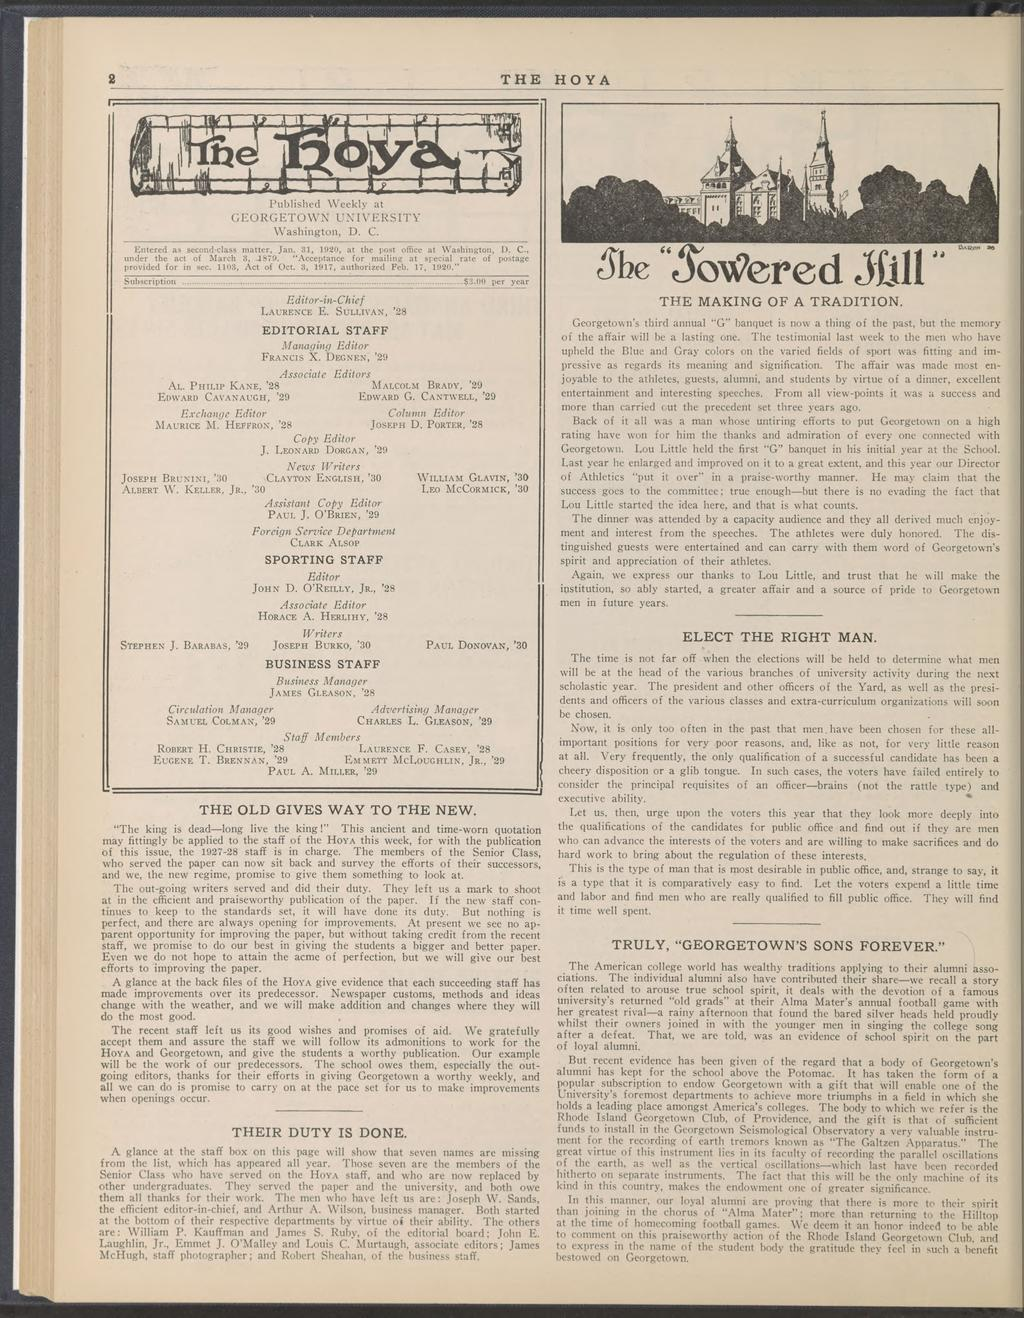 THE HOYA Published Weekly at GEORGETOWN UNIVERSITY Washington, D. C. Entered as second-class matter, Jan. 81, 11120, at the post office at Washington, 1). C-. under the act of March 3, -1879.